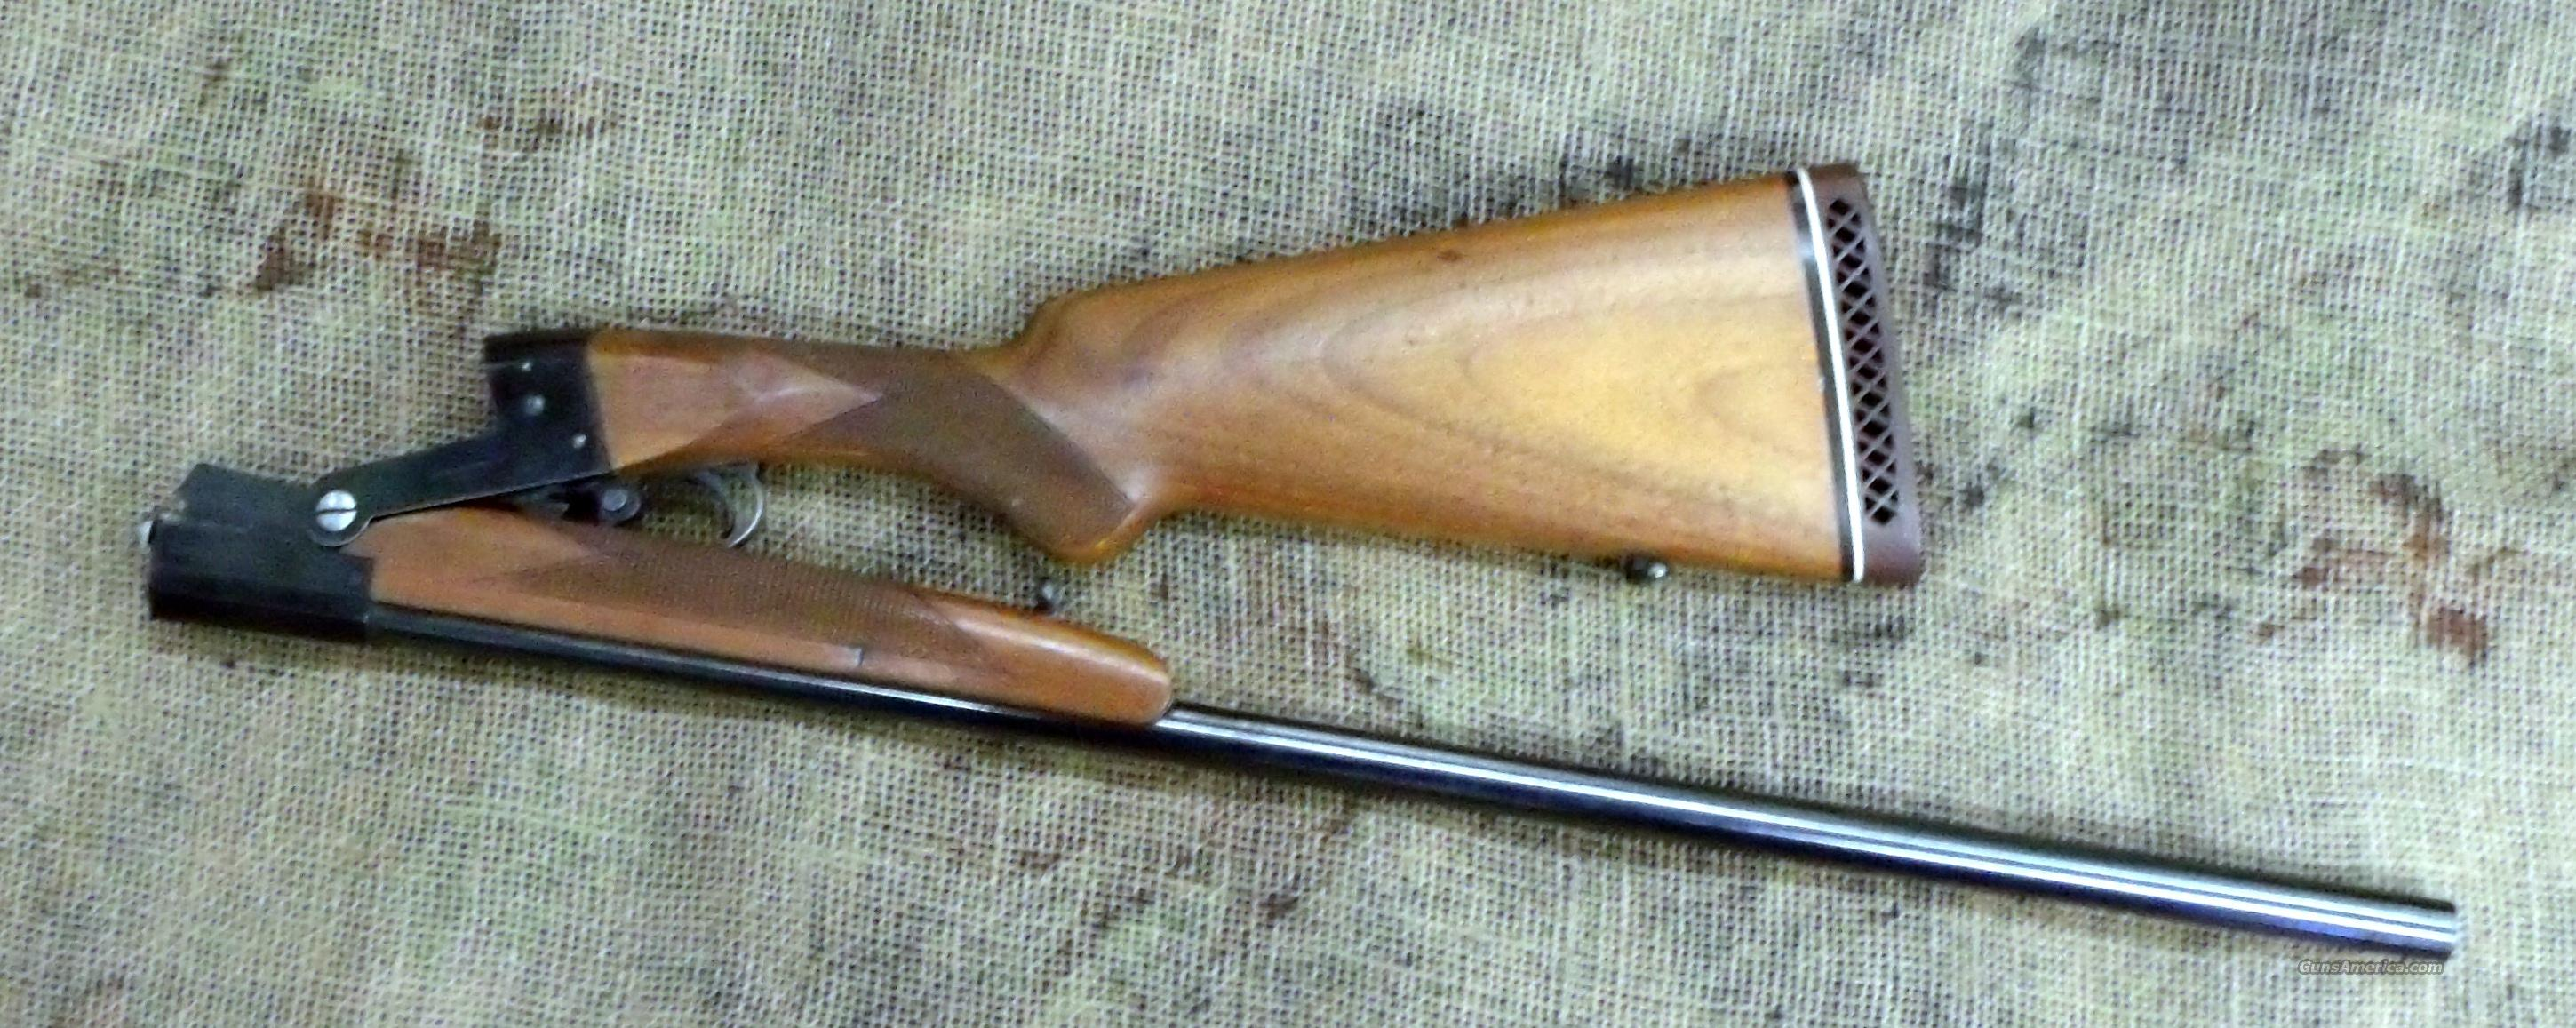 P. BERETTA Mod. FS-1 Single Shot Shotgun, 16ga  Guns > Shotguns > Beretta Shotguns > Single Barrel